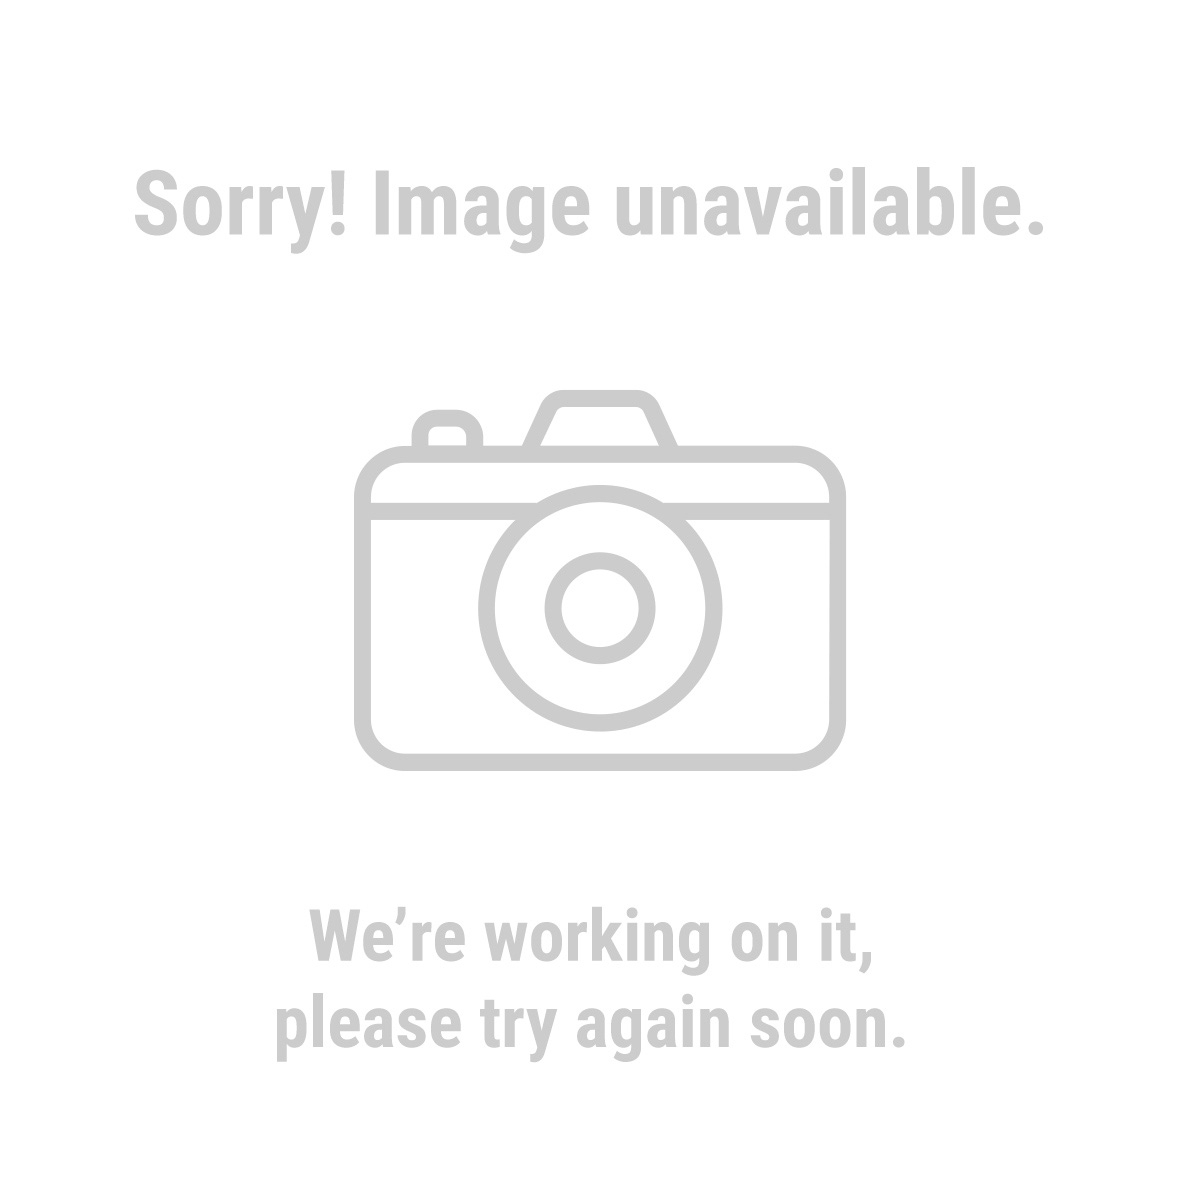 Central-Forge 468 12 Piece Needle File Set